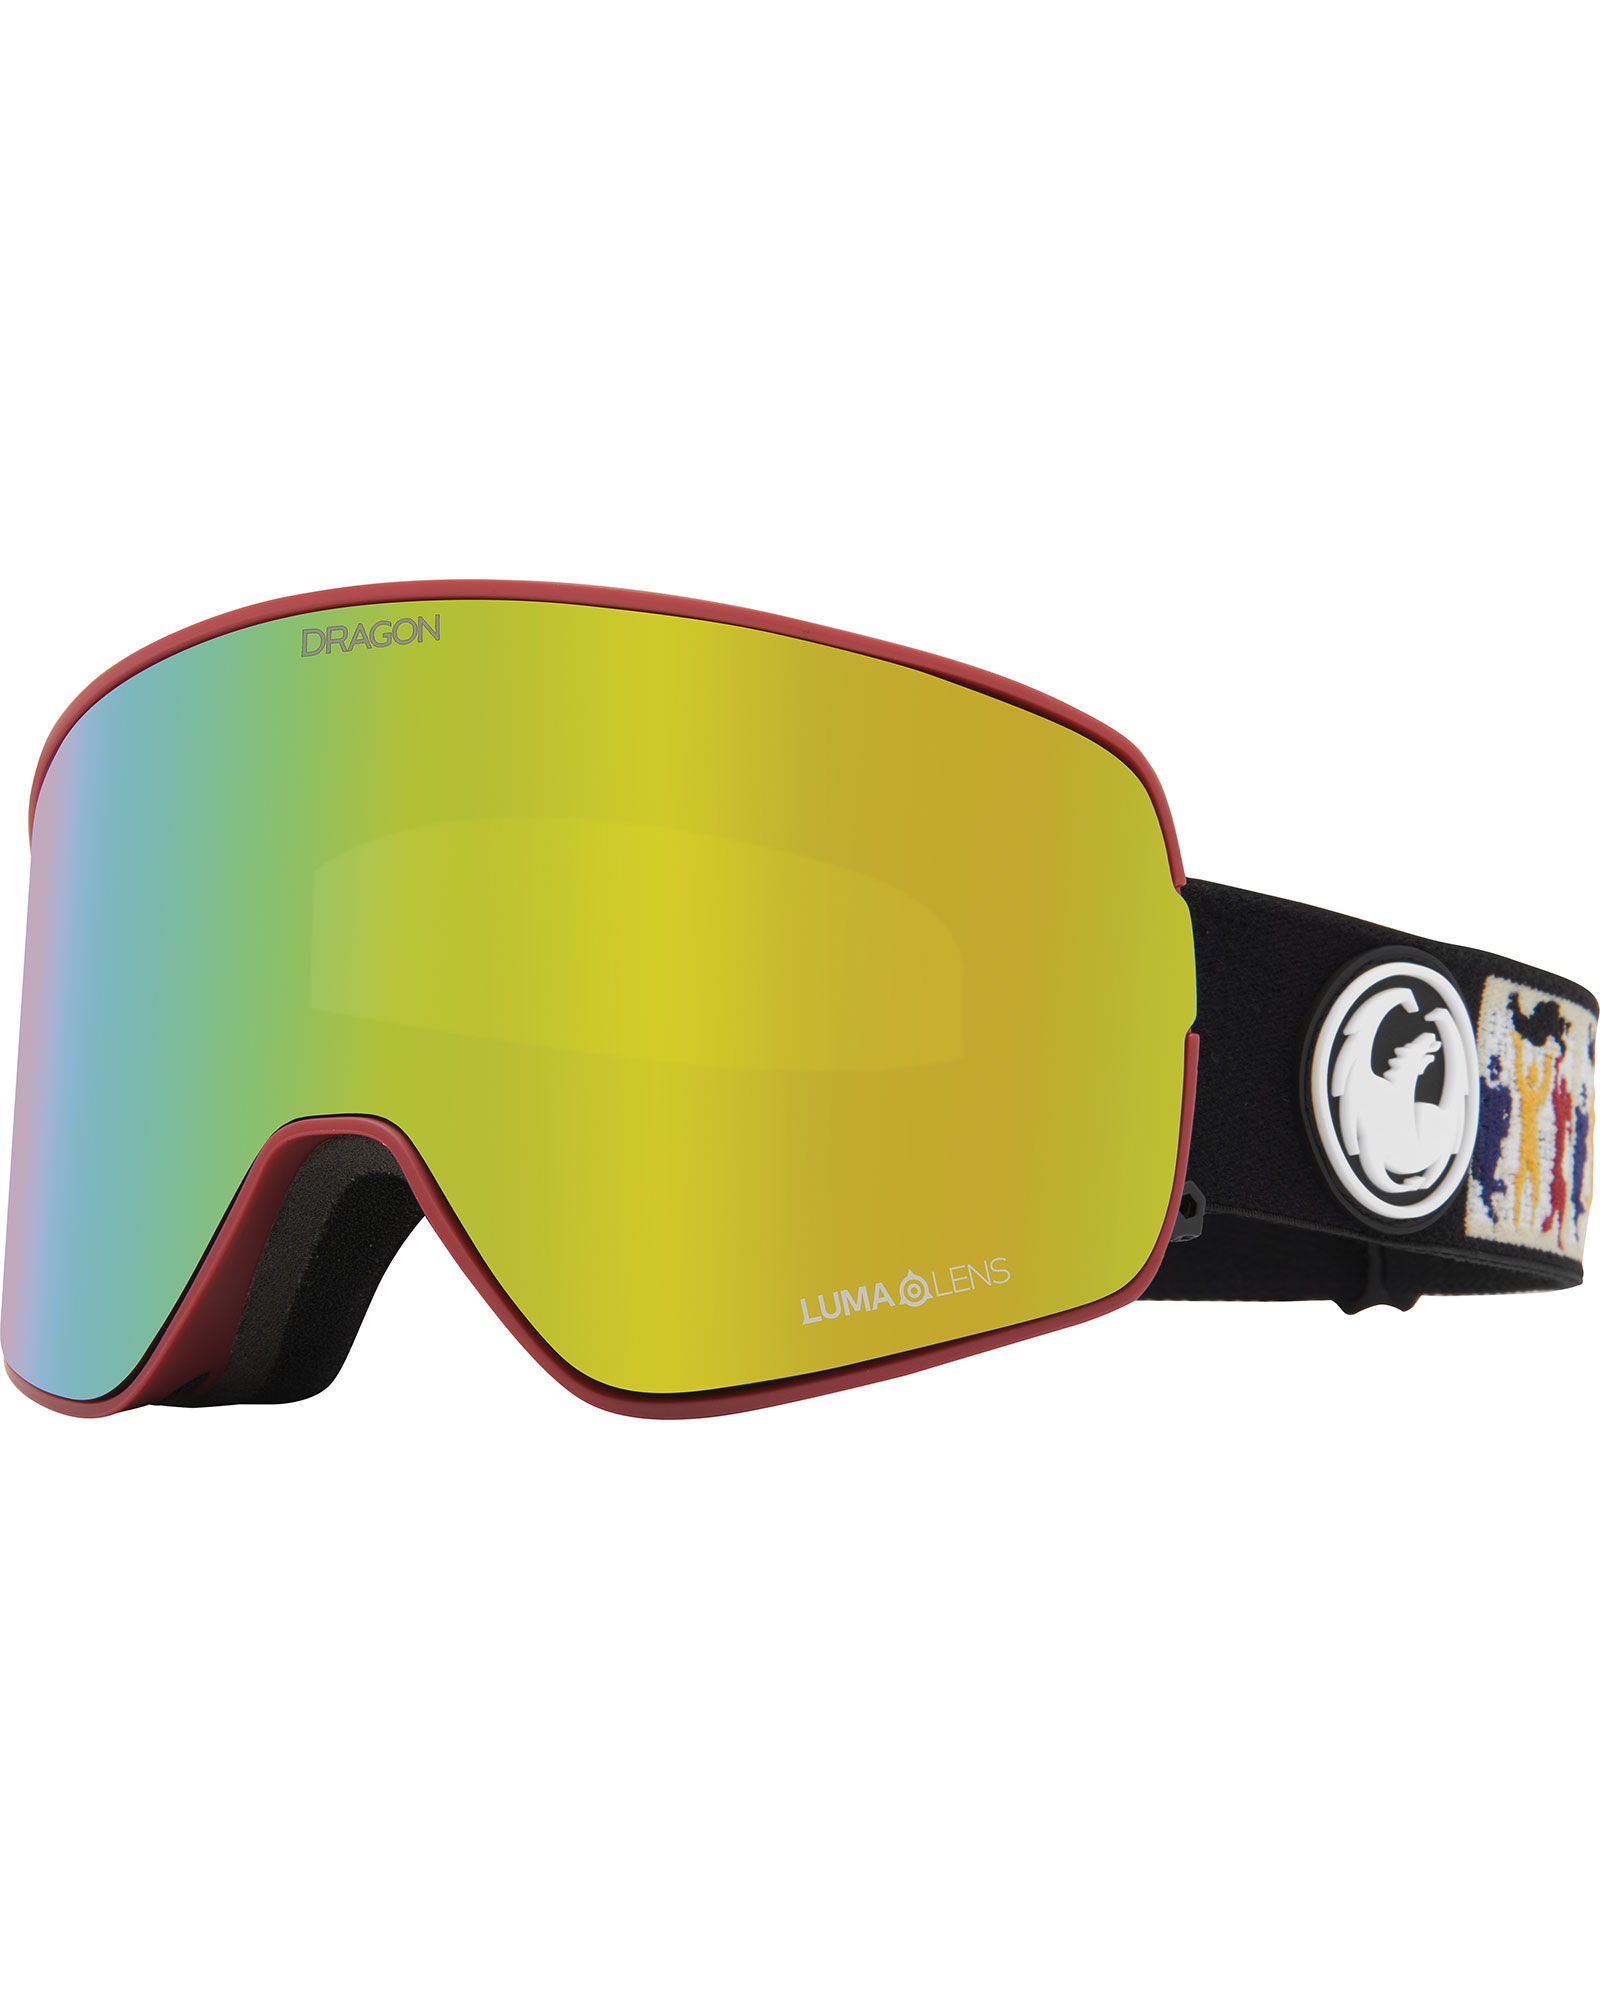 Dragon NFX2 Forest Bailey Signature / Lumalens Gold Ionized + Lumalens Yellow Goggles 2020 / 2021 0